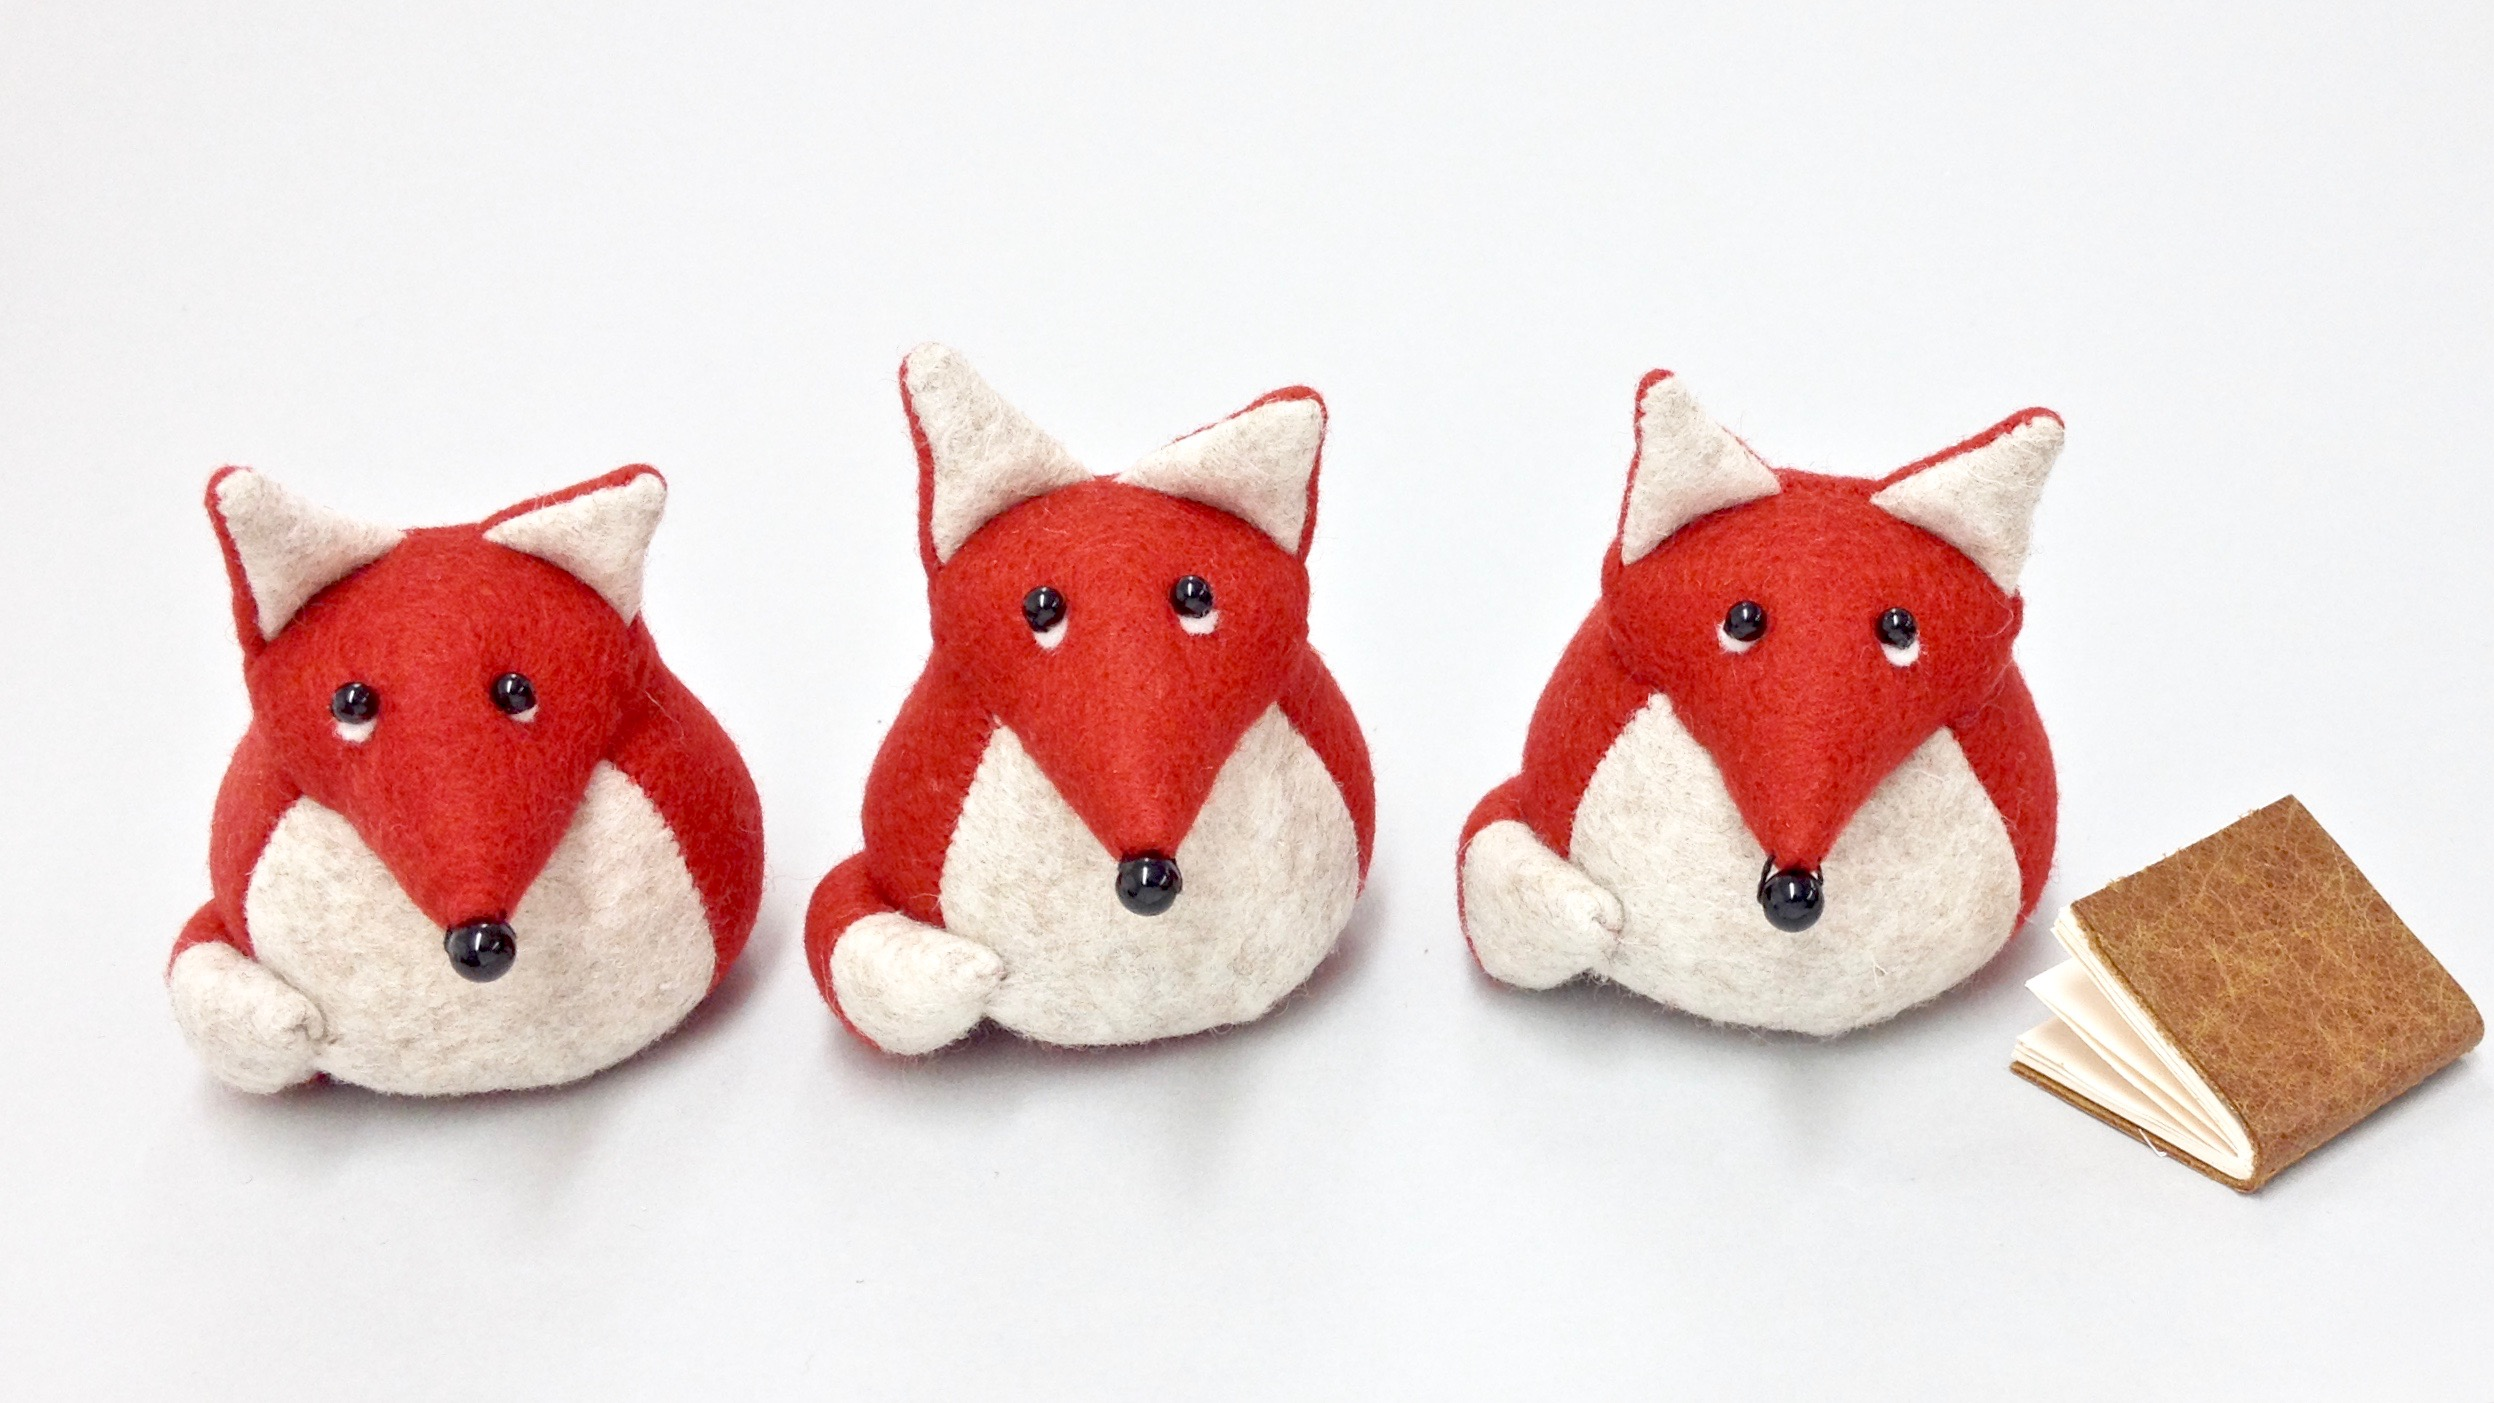 Bilberry Woods storybook character Findlay the Fox handmade from wool felt by Laura Mirjami | Mirjami Design.jpg